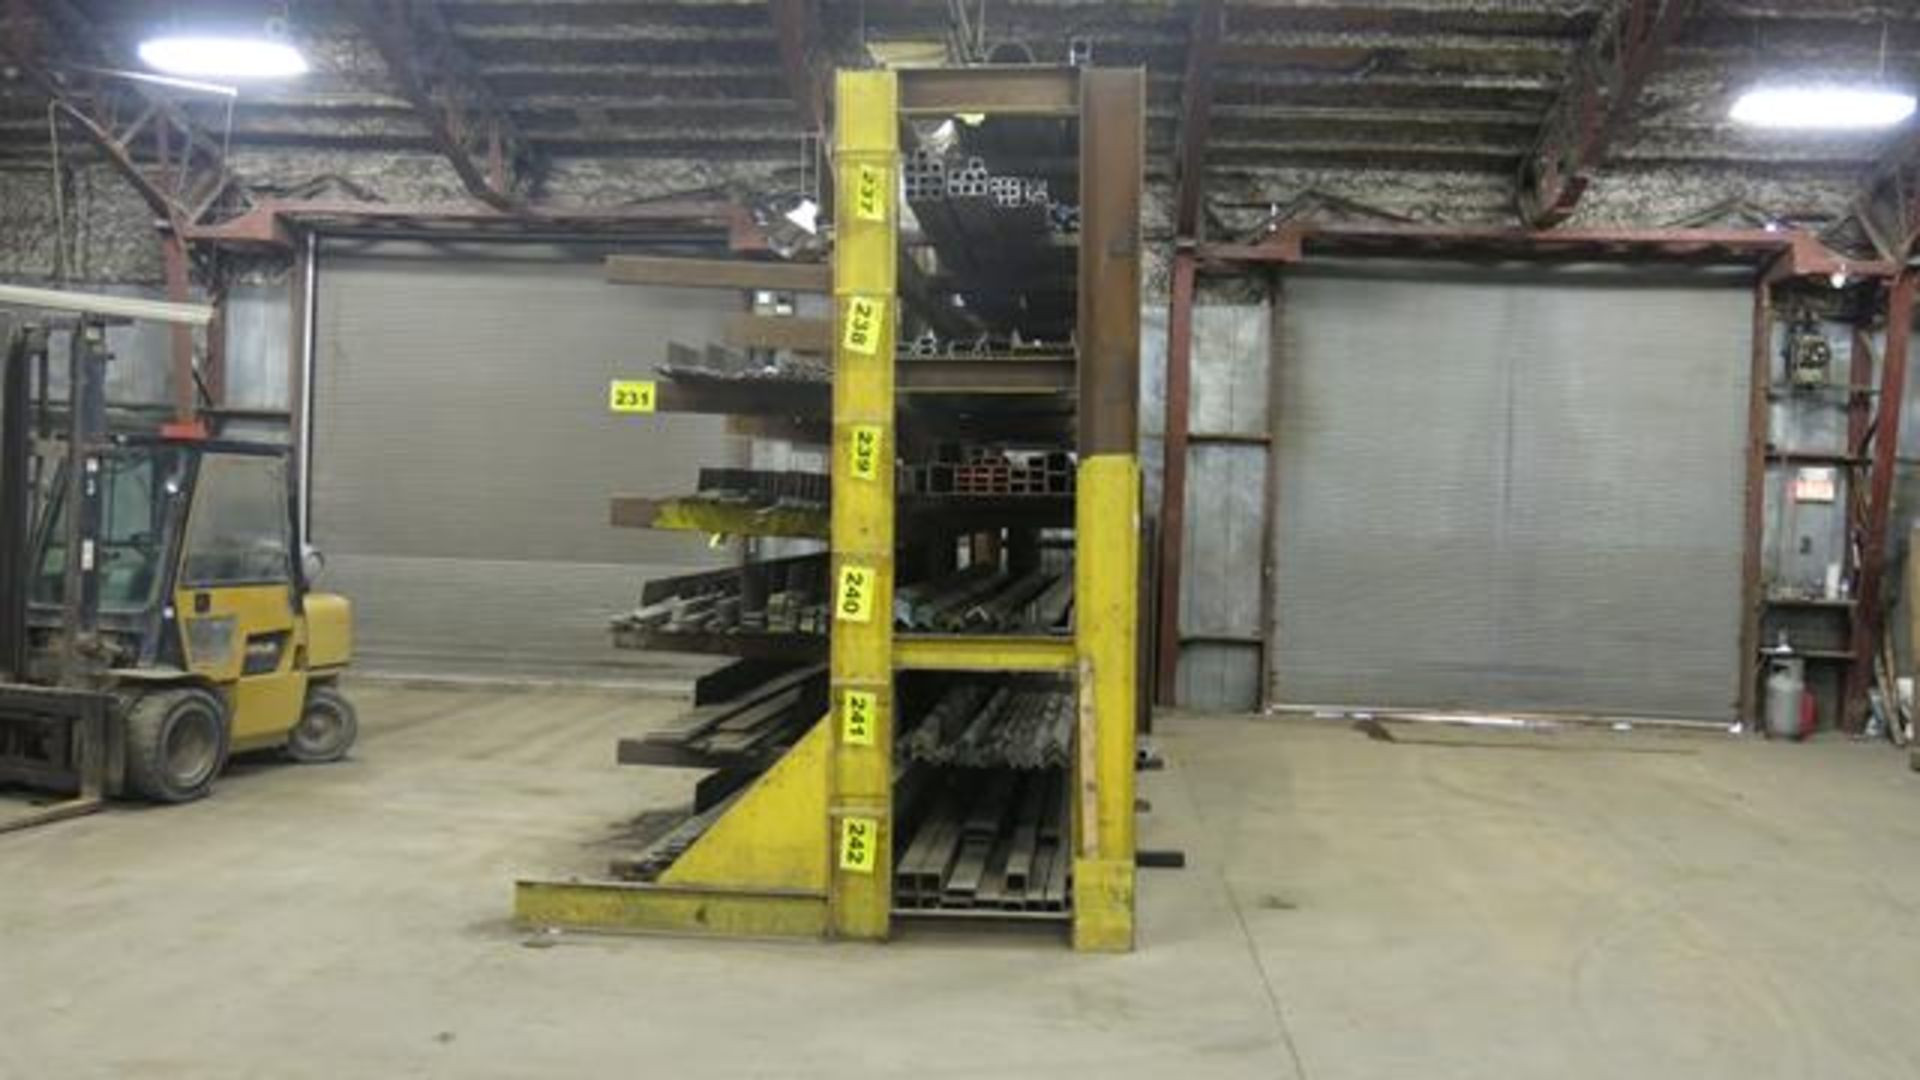 STORAGE RACK, SINGLE SIDED, 12' X 29' X 8' (CONTENTS NOT INCLUDED) (LATE DELIVERY) - Image 2 of 2